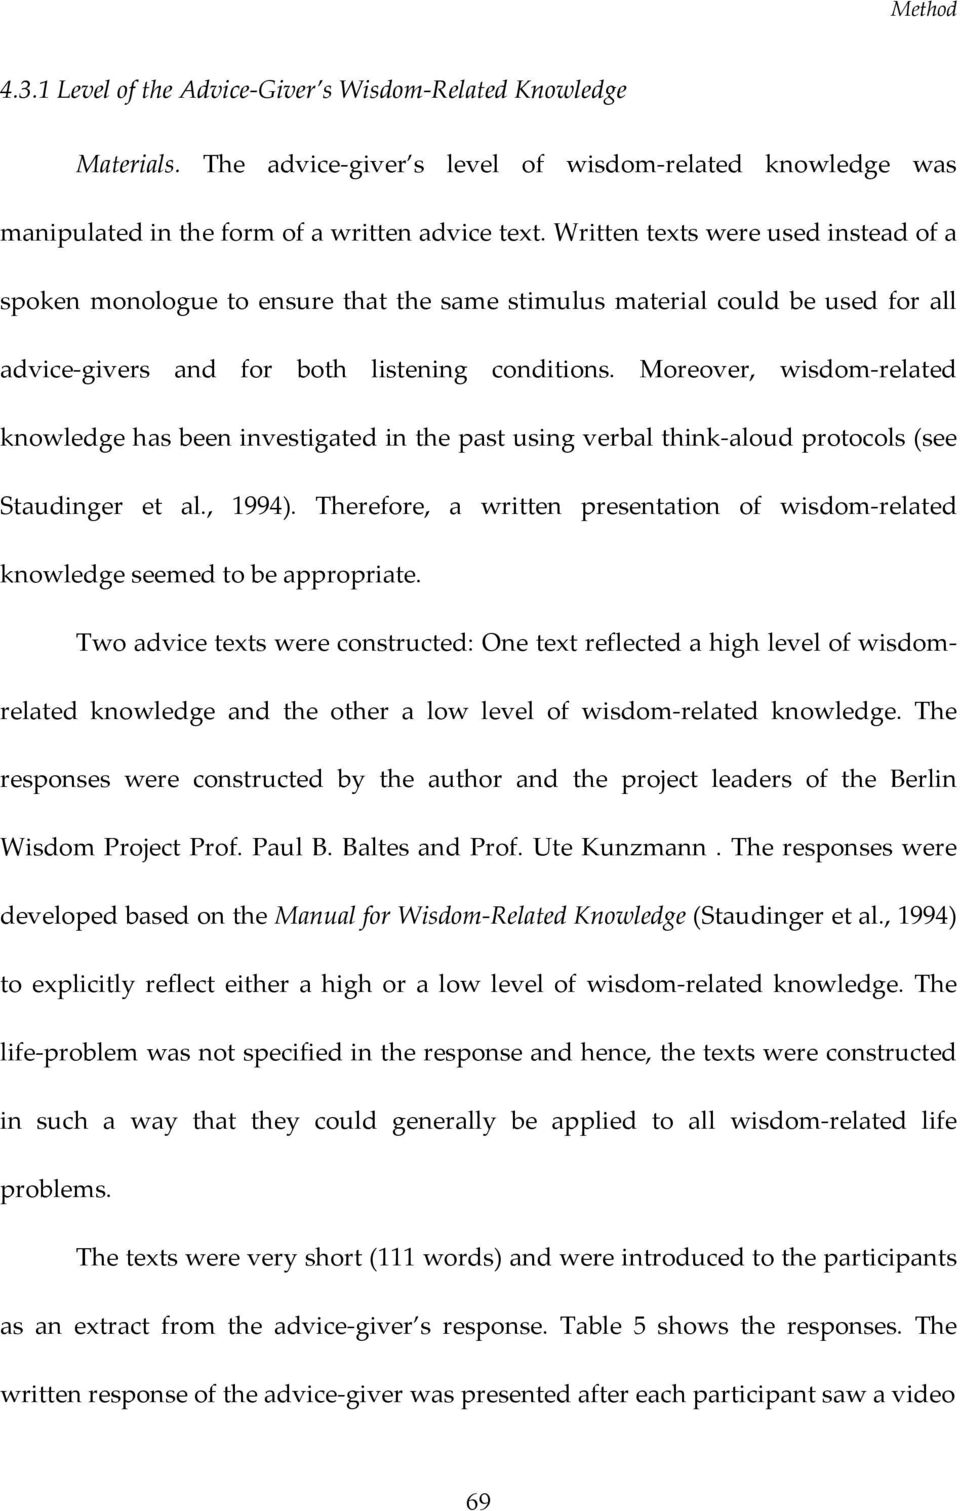 Moreover, wisdom-related knowledge has been investigated in the past using verbal think-aloud protocols (see Staudinger et al., 1994).